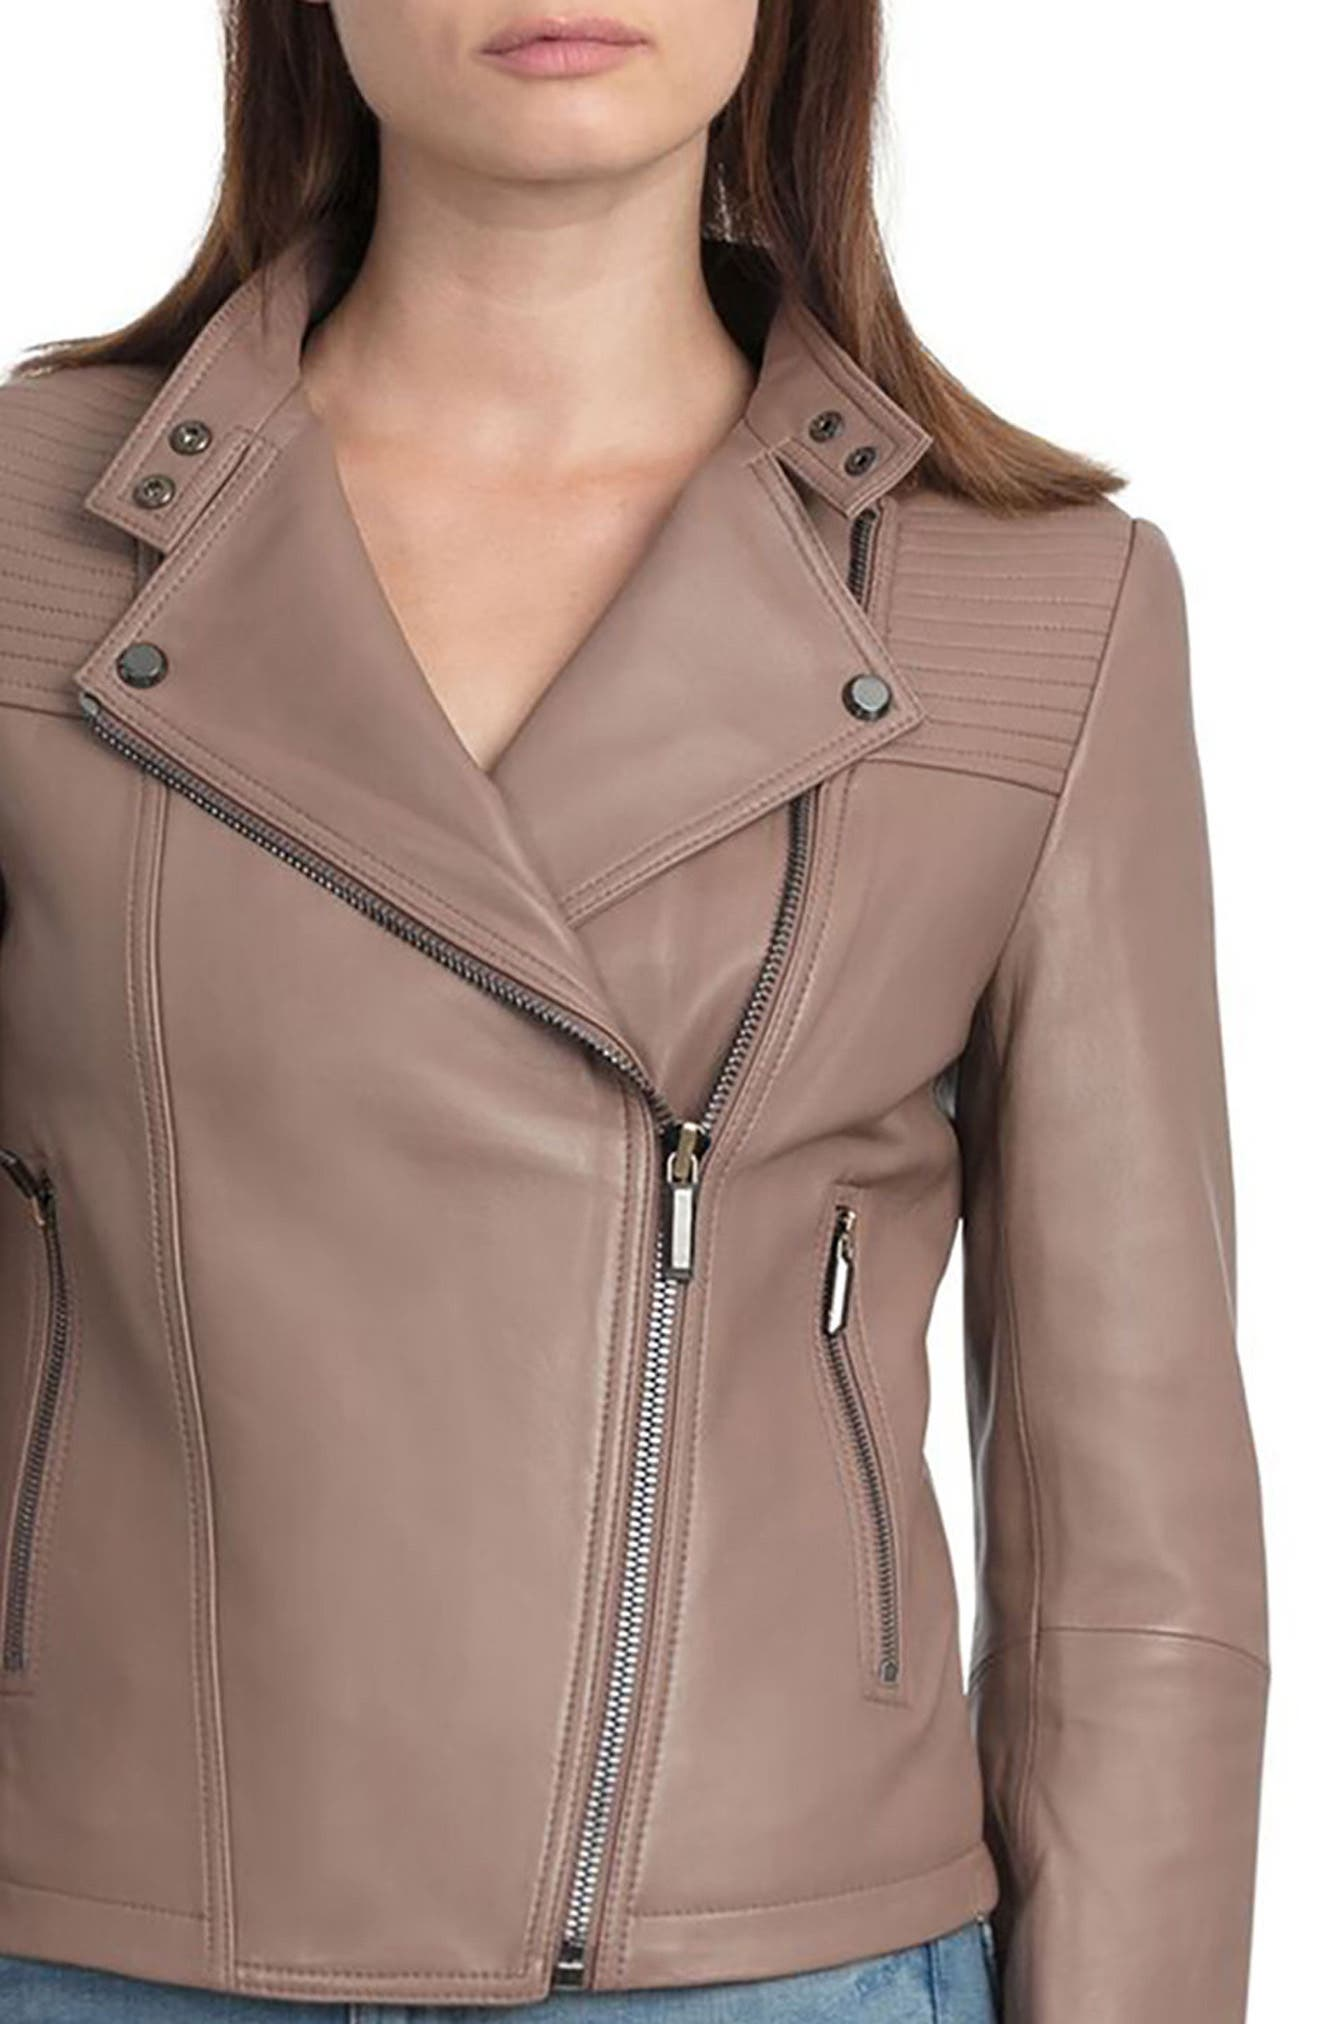 Bagatelle Quilted Lambskin Leather Moto Jacket,                             Alternate thumbnail 4, color,                             255